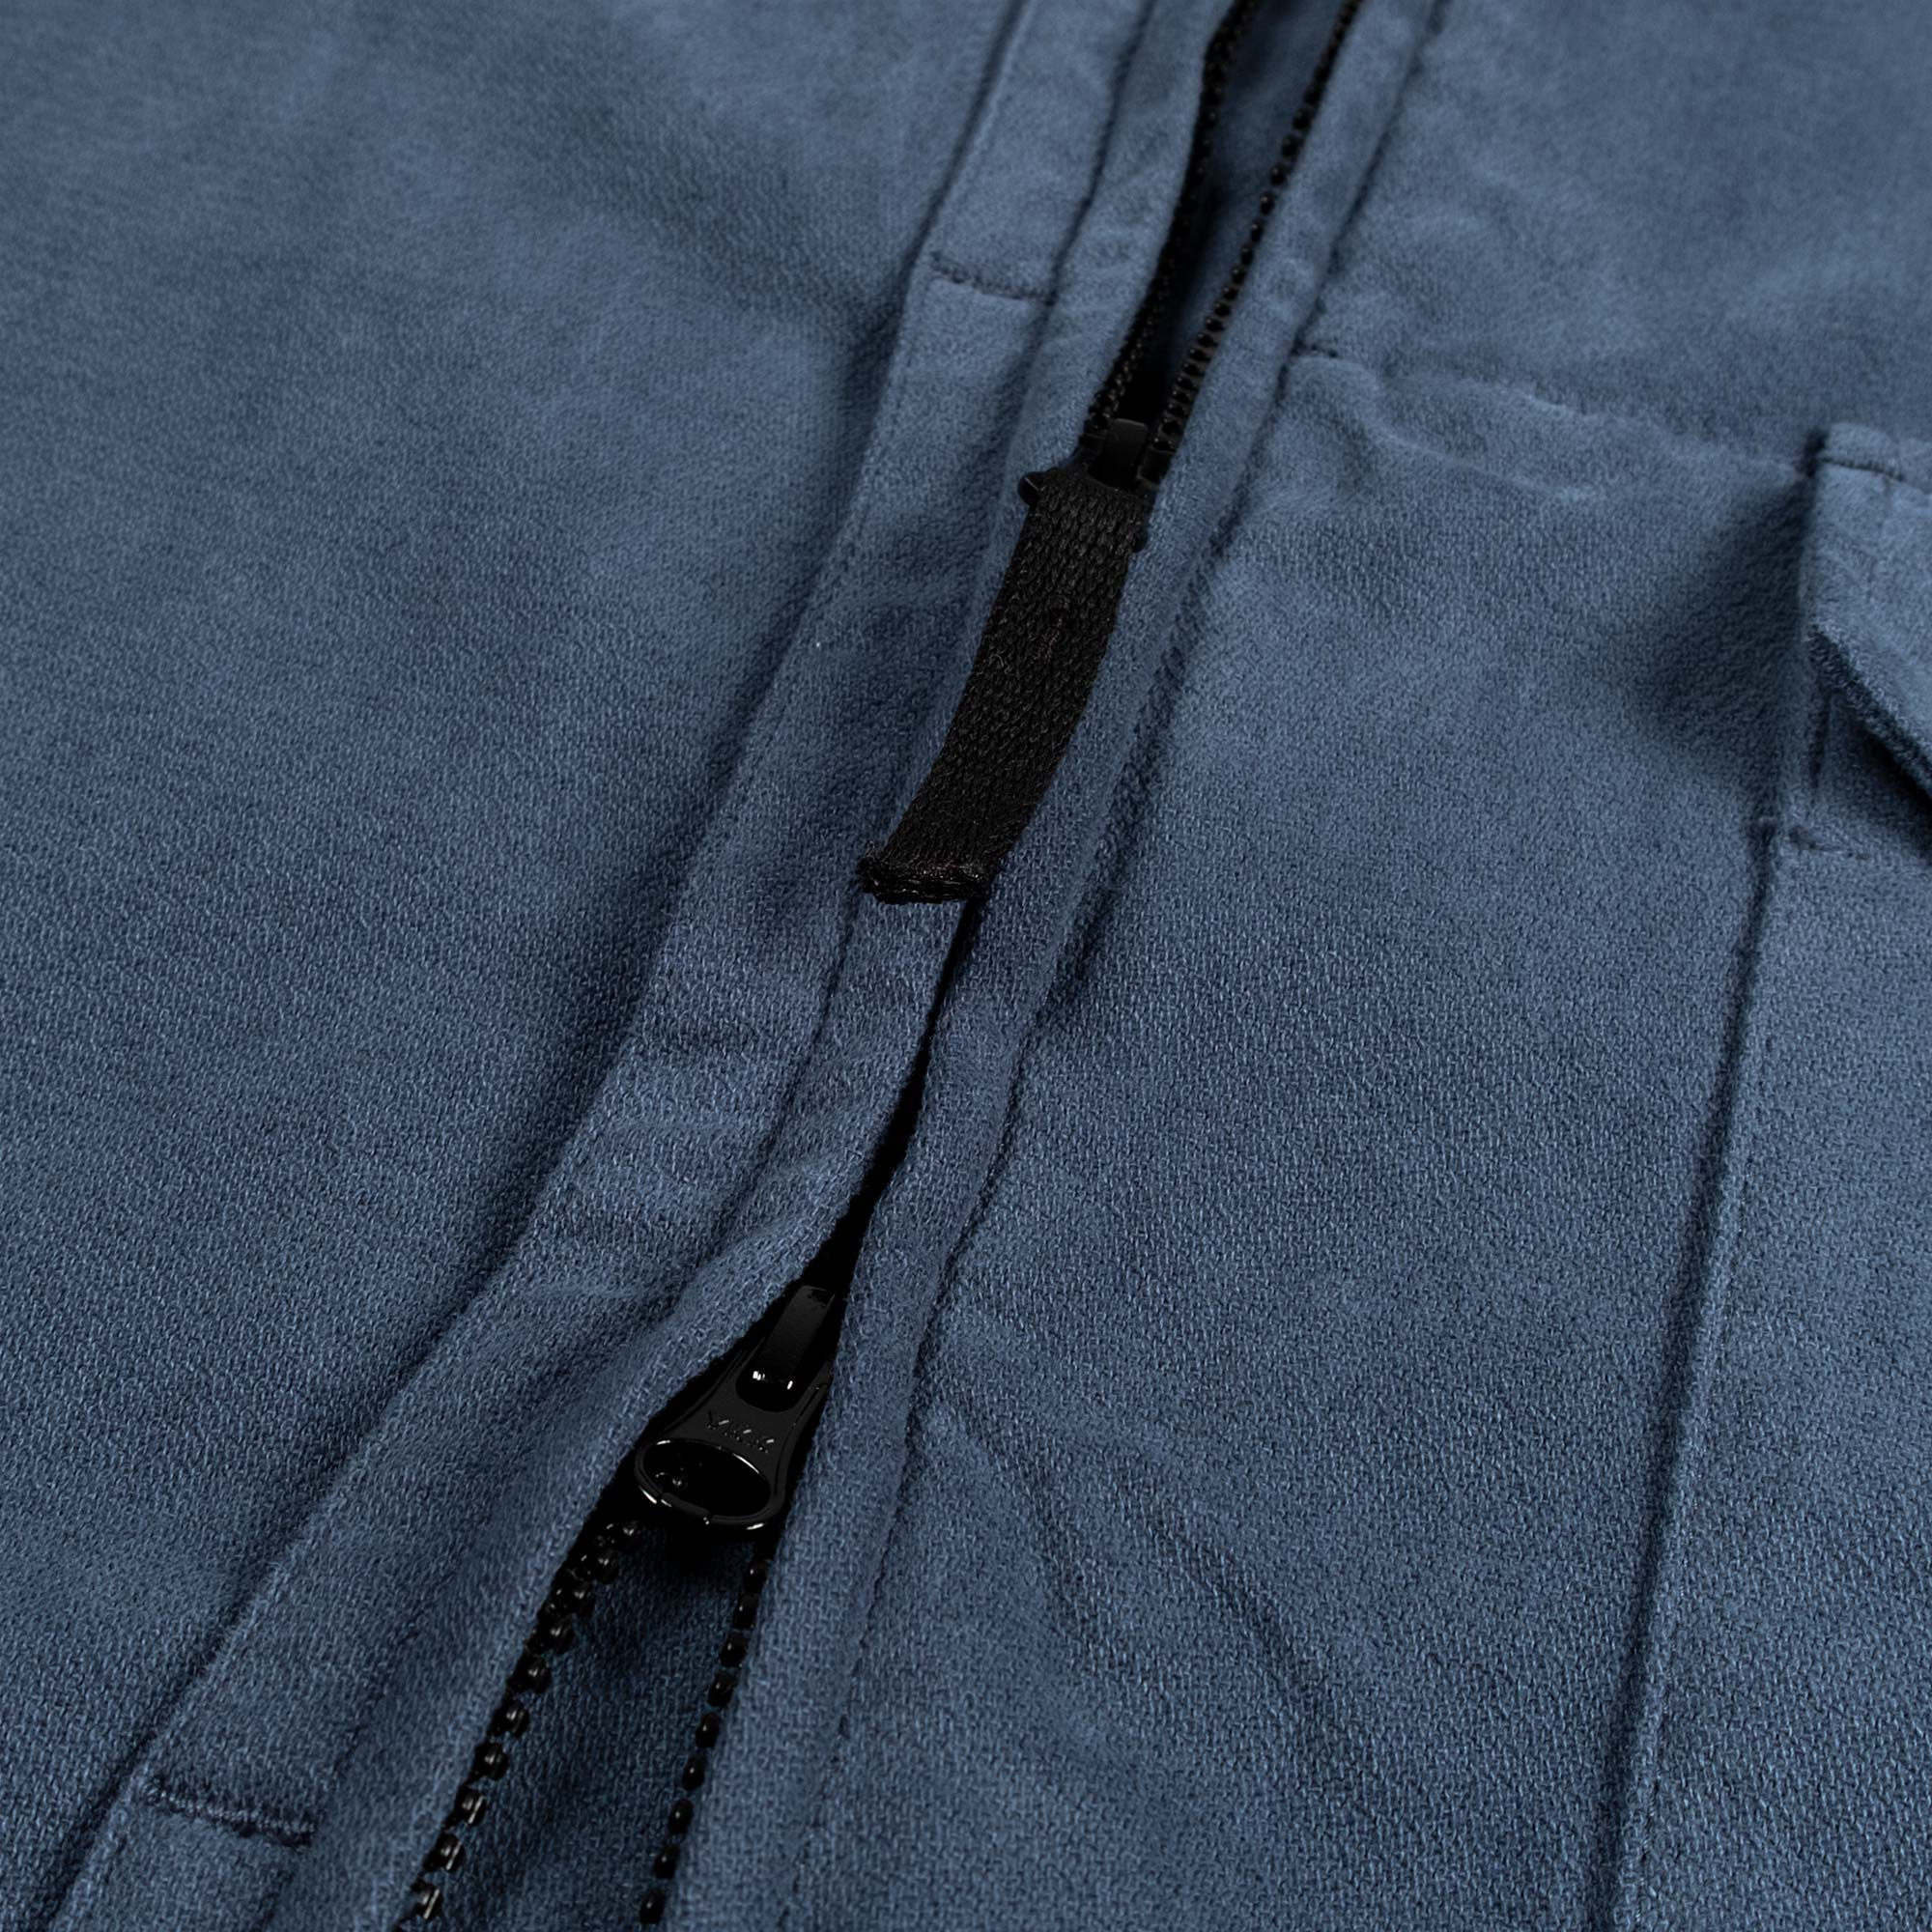 Stone Island Textured Brushed Recycled Cotton Overshirt 10704 - Cobalt Blue 6